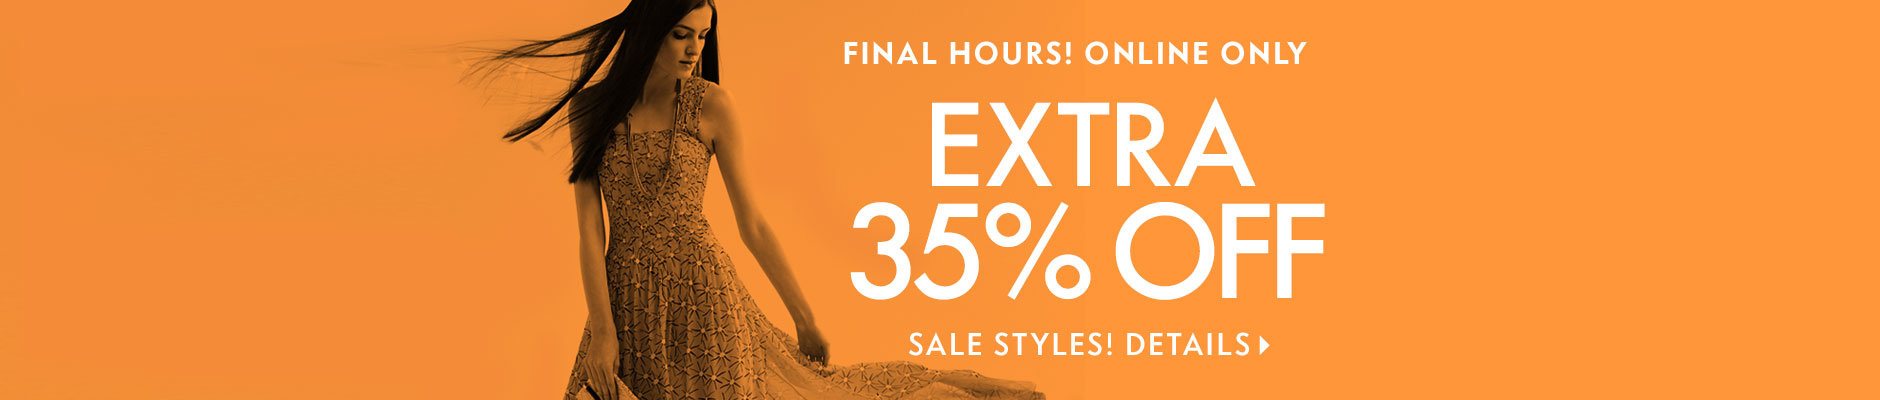 Final Hours! EXTRA 35% off sale styles